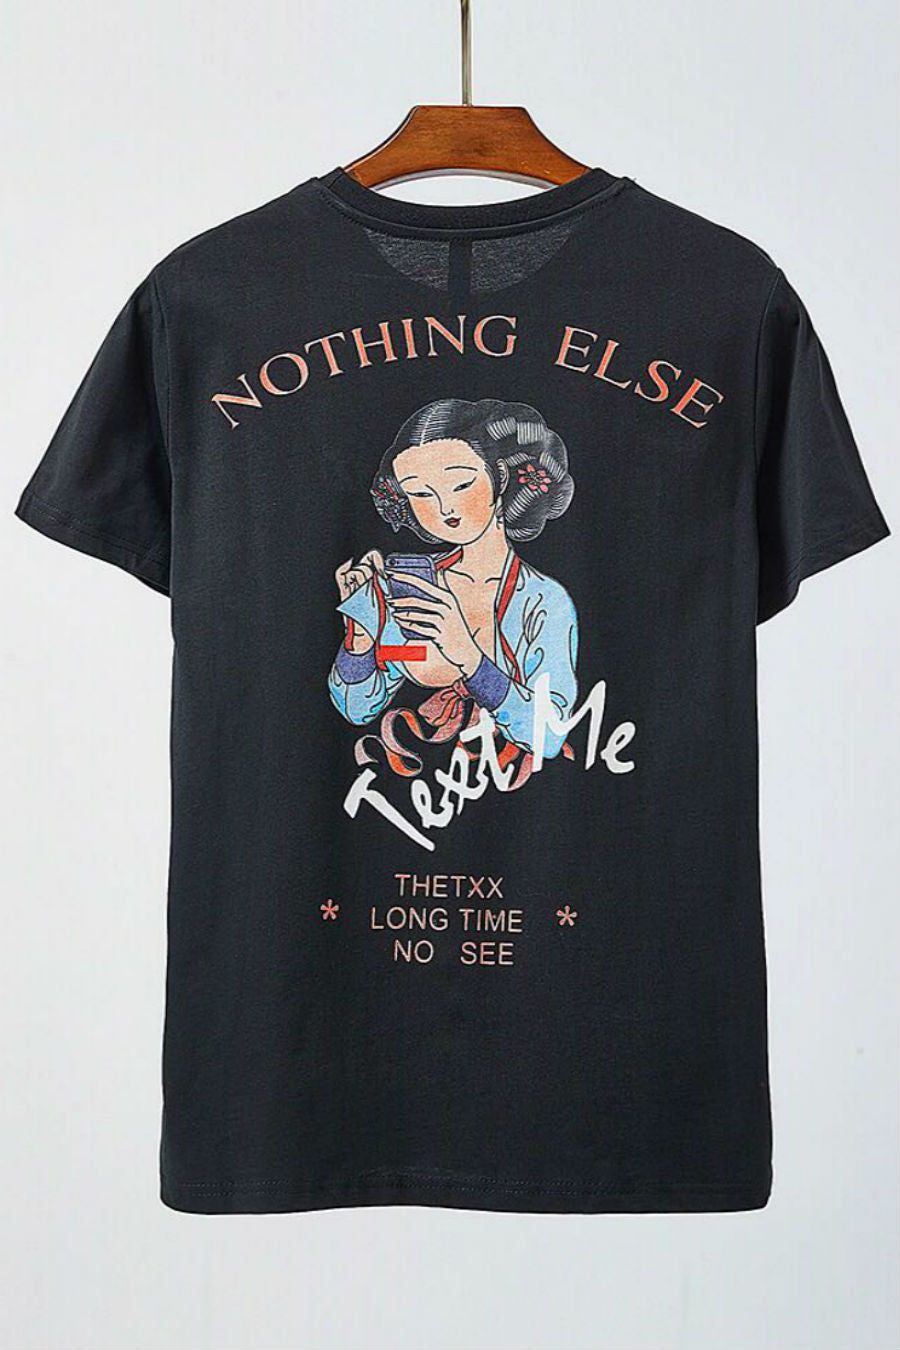 Nothing Else Print T-shirt